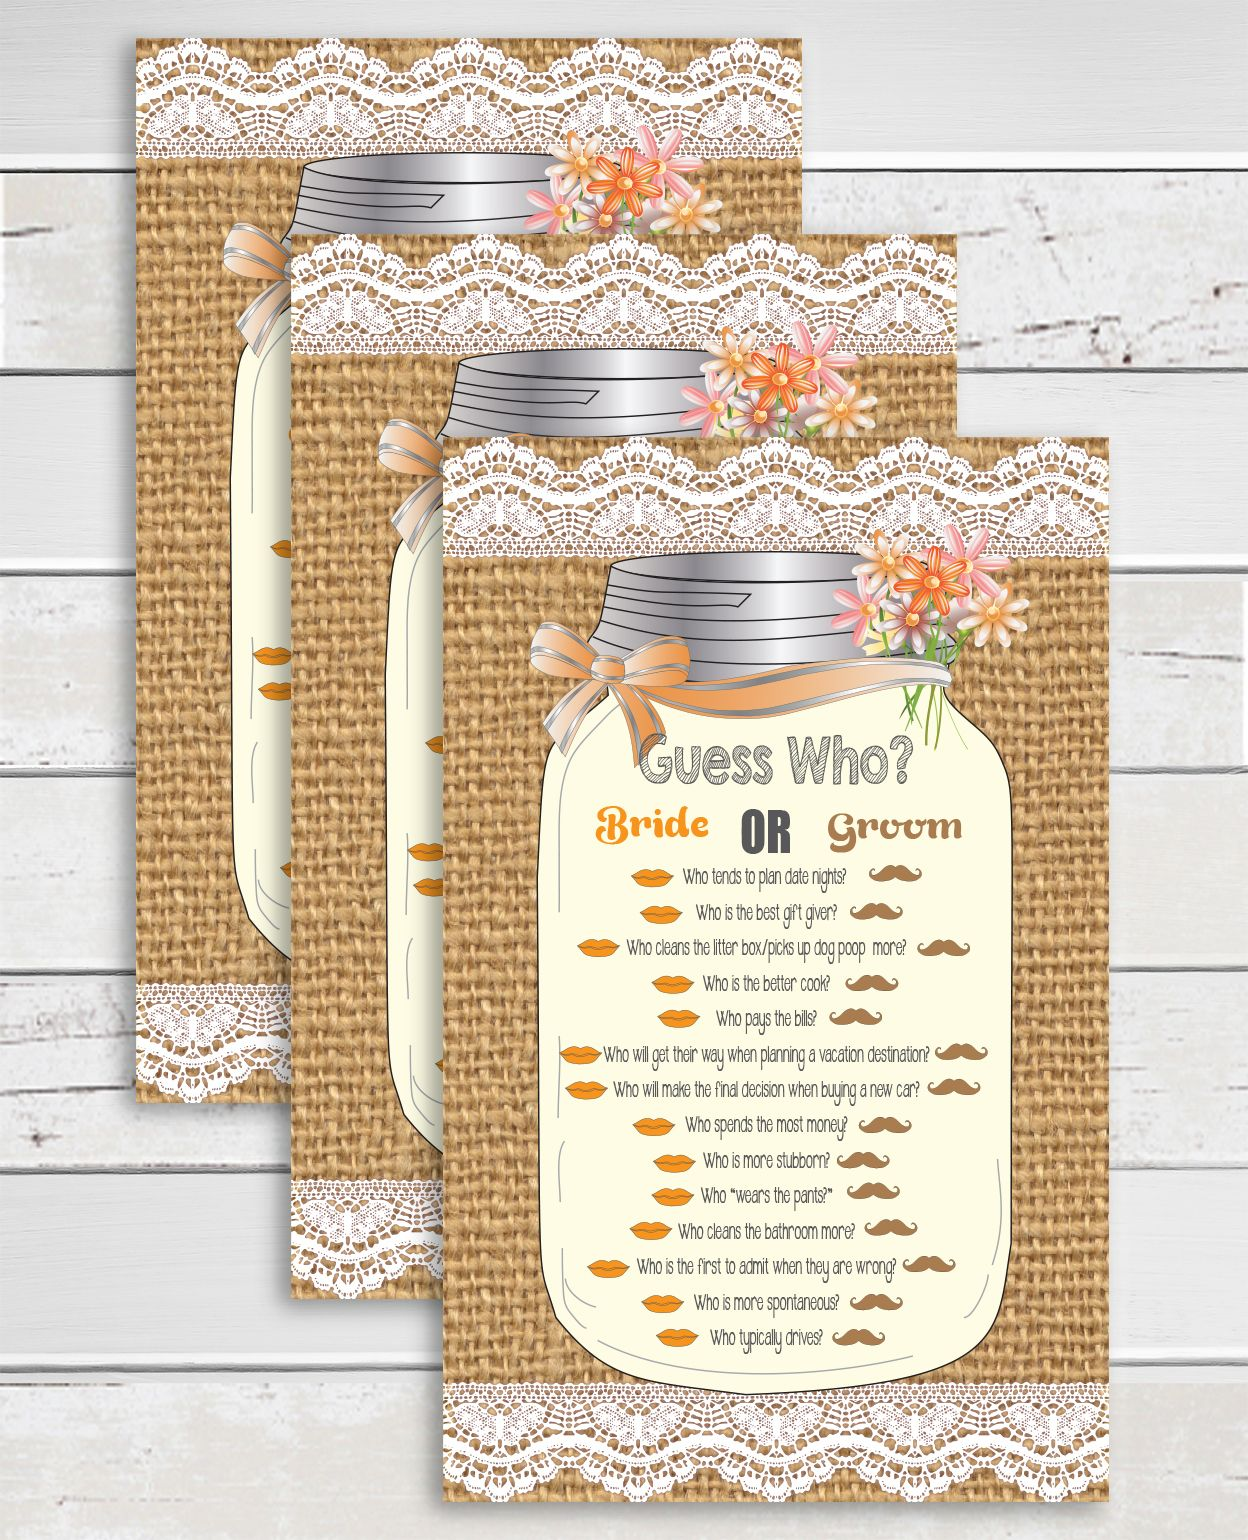 Teal Blank Burlap Lace Background Free A Burlap Lace Orange Tancolors Accent Guess Who Shower Game Lace Orange A Burlap Guess Who Shower Game Lace Background Burlap